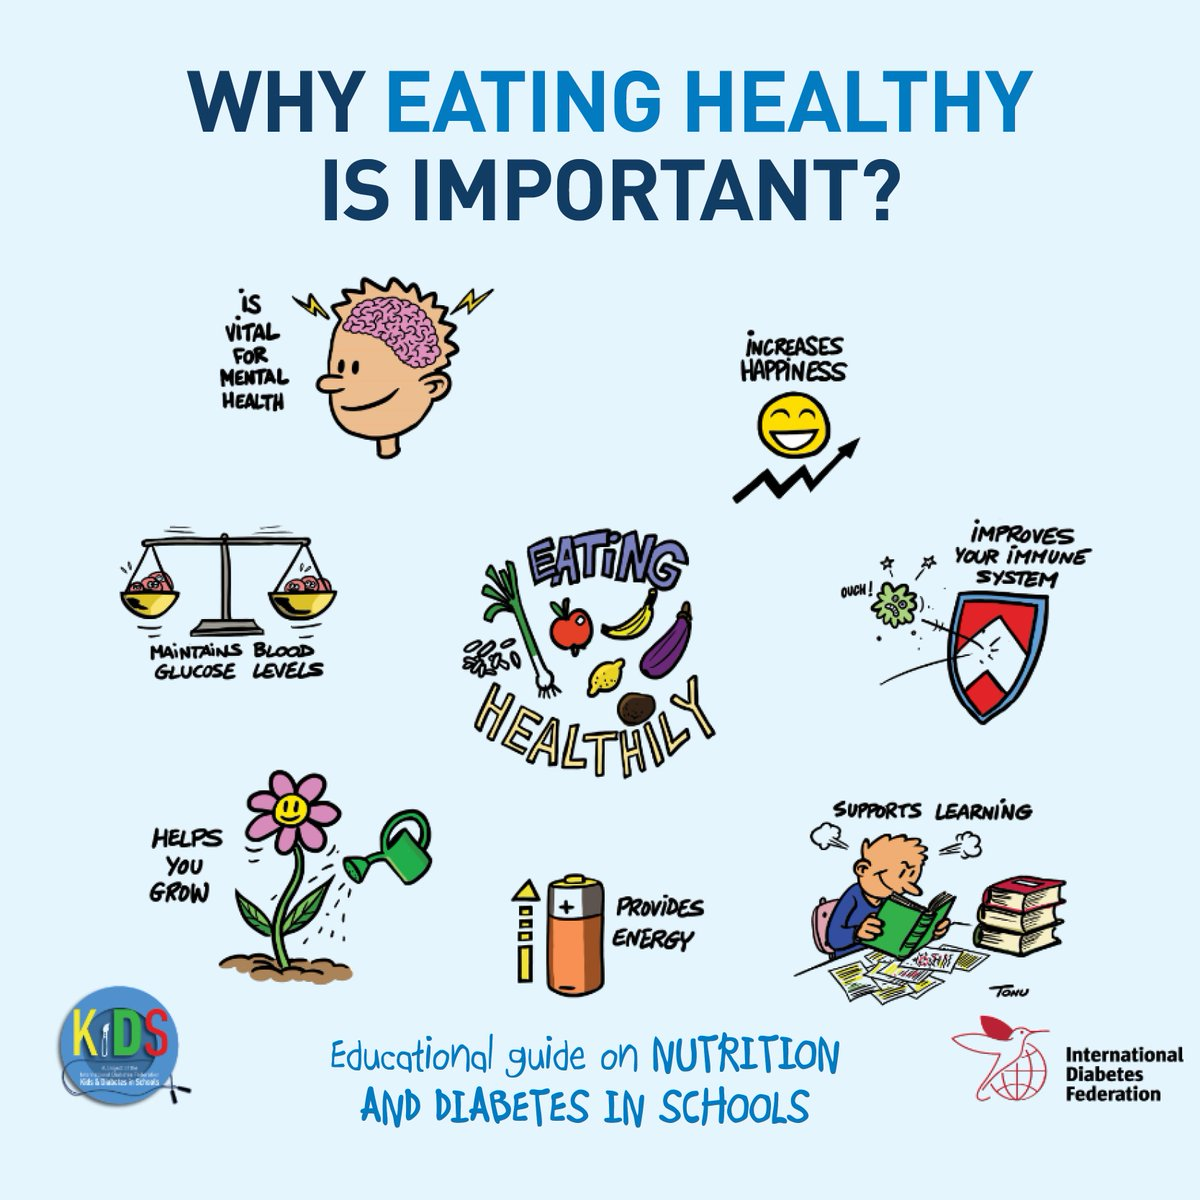 test Twitter Media - Healthy eating improves your immune system and helps keep your blood glucose levels under control. Learn more about #diabetes and nutrition in our #KiDS Nutrition Guide  https://t.co/1n2pMZpxiI https://t.co/YZkDmq8gKW